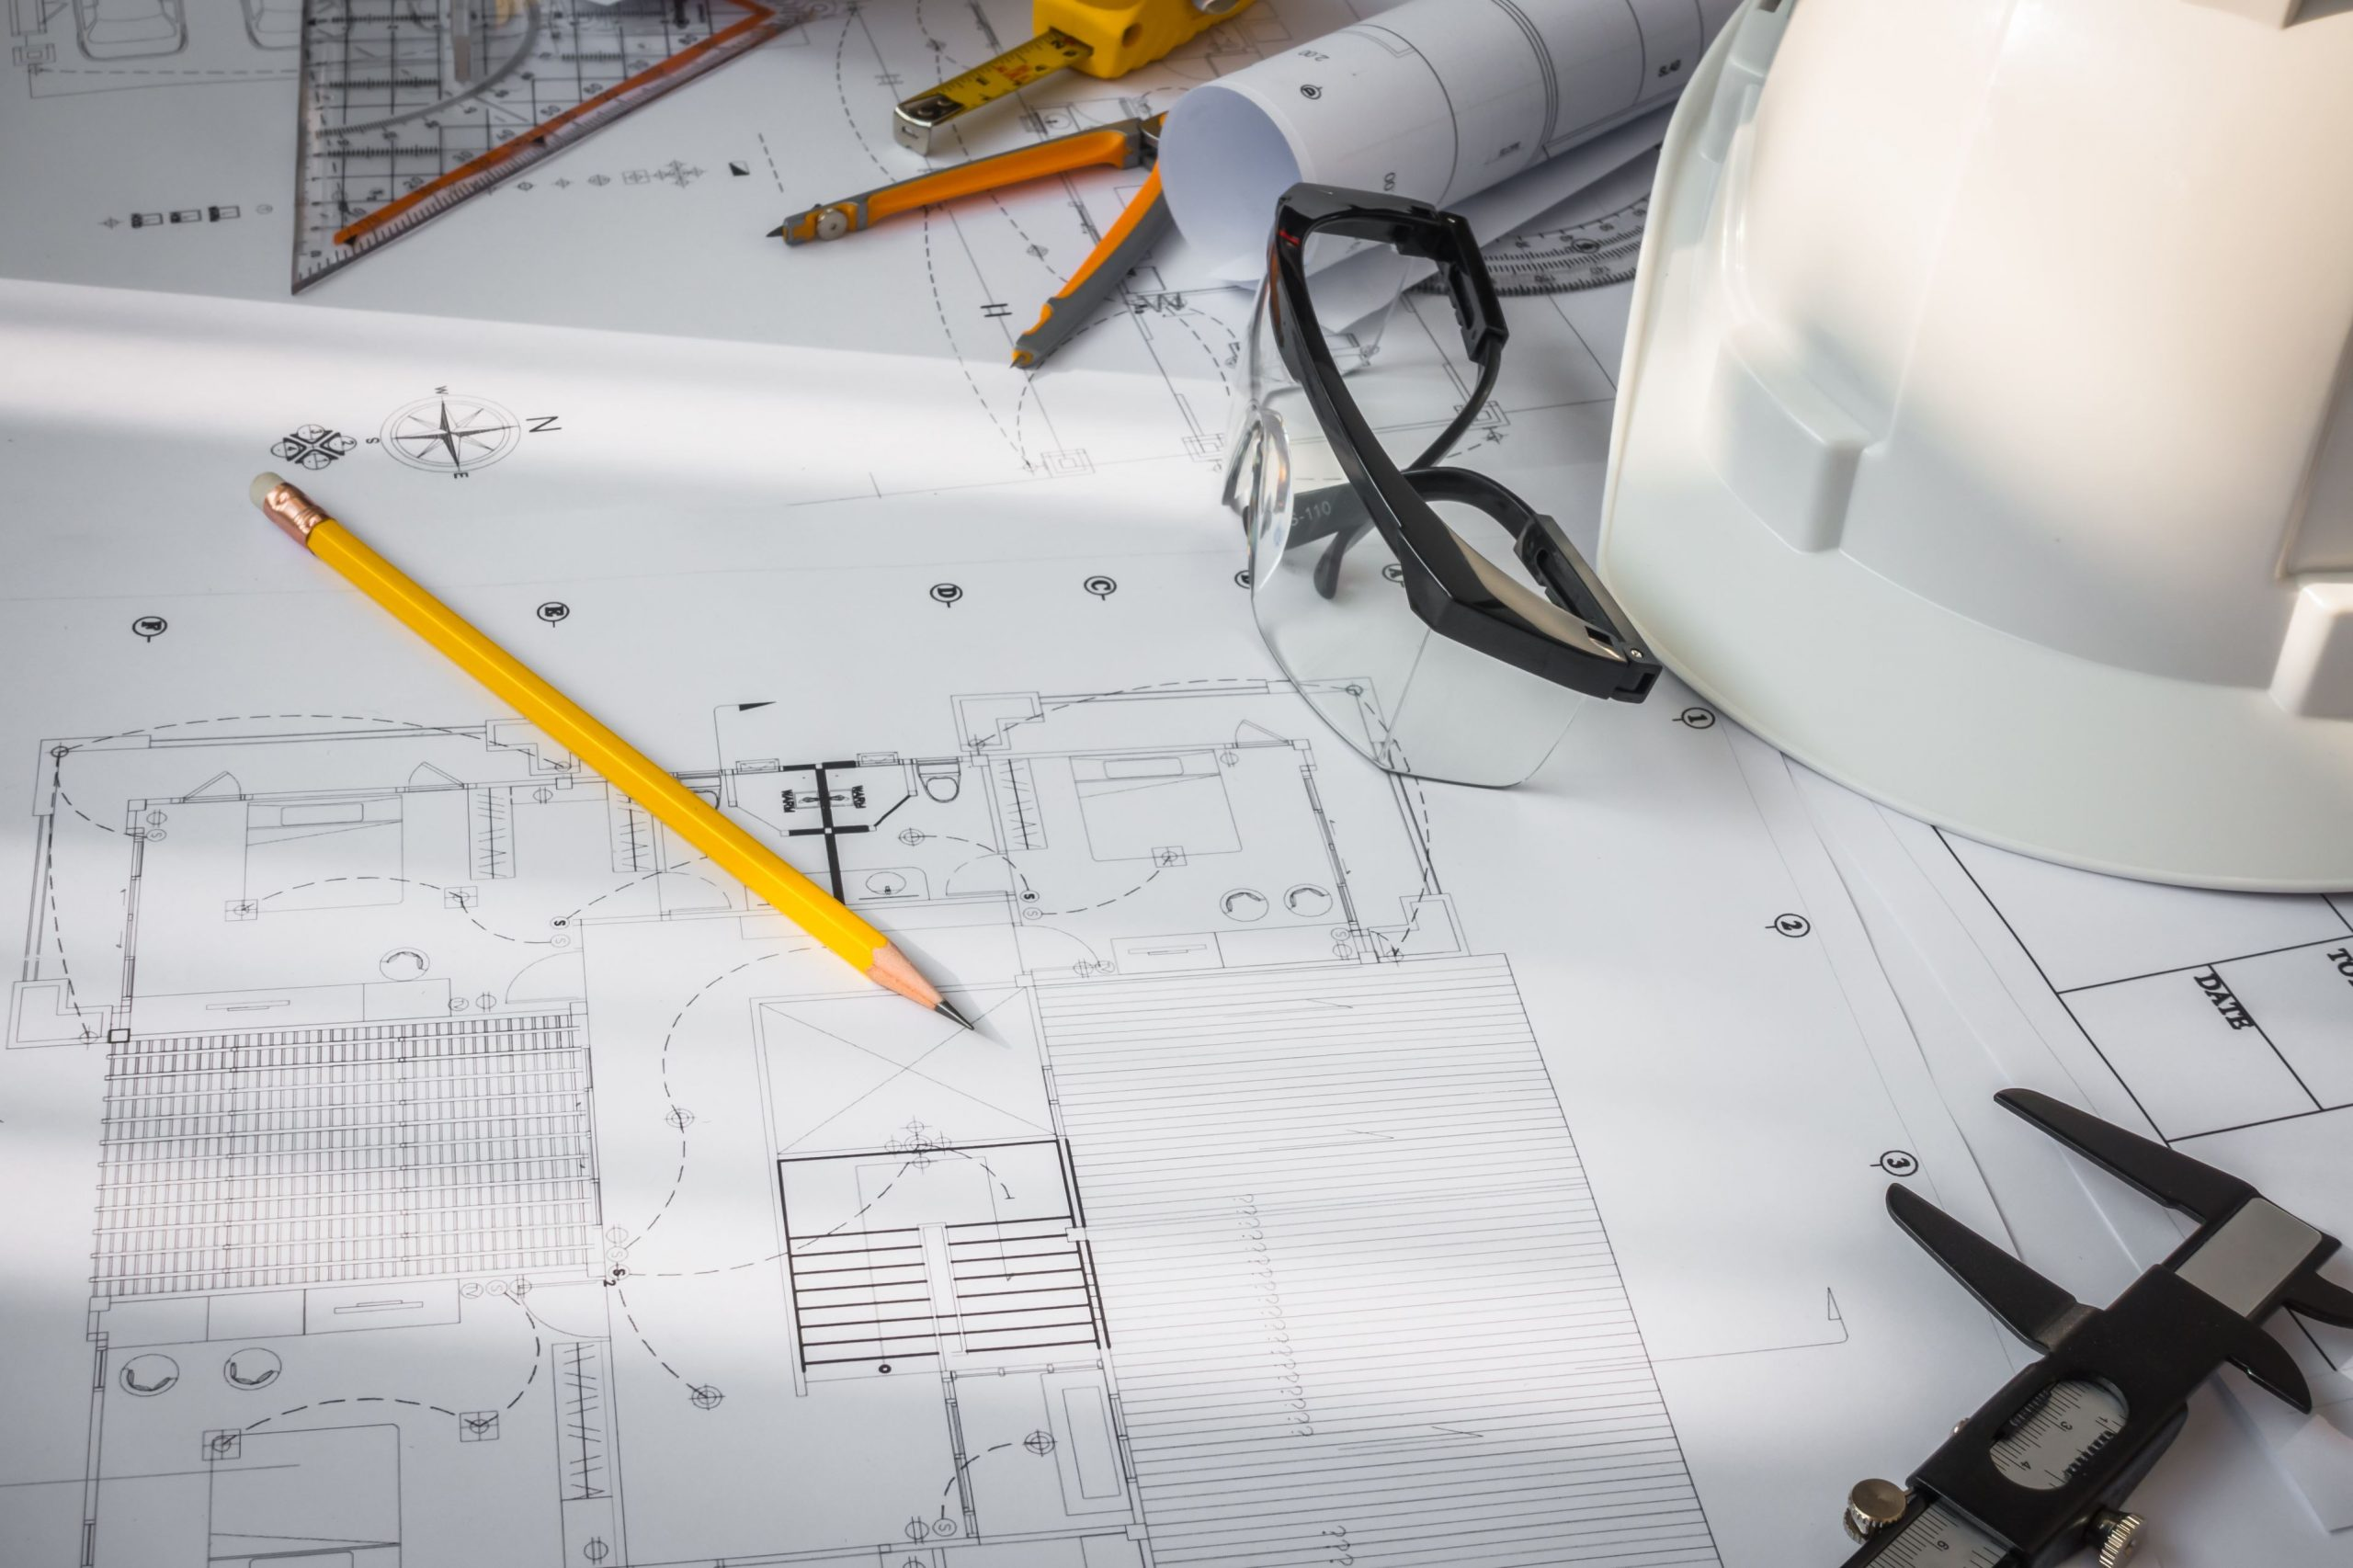 Construction plans with White helmet and drawing tools on blueprints - printmydrawings